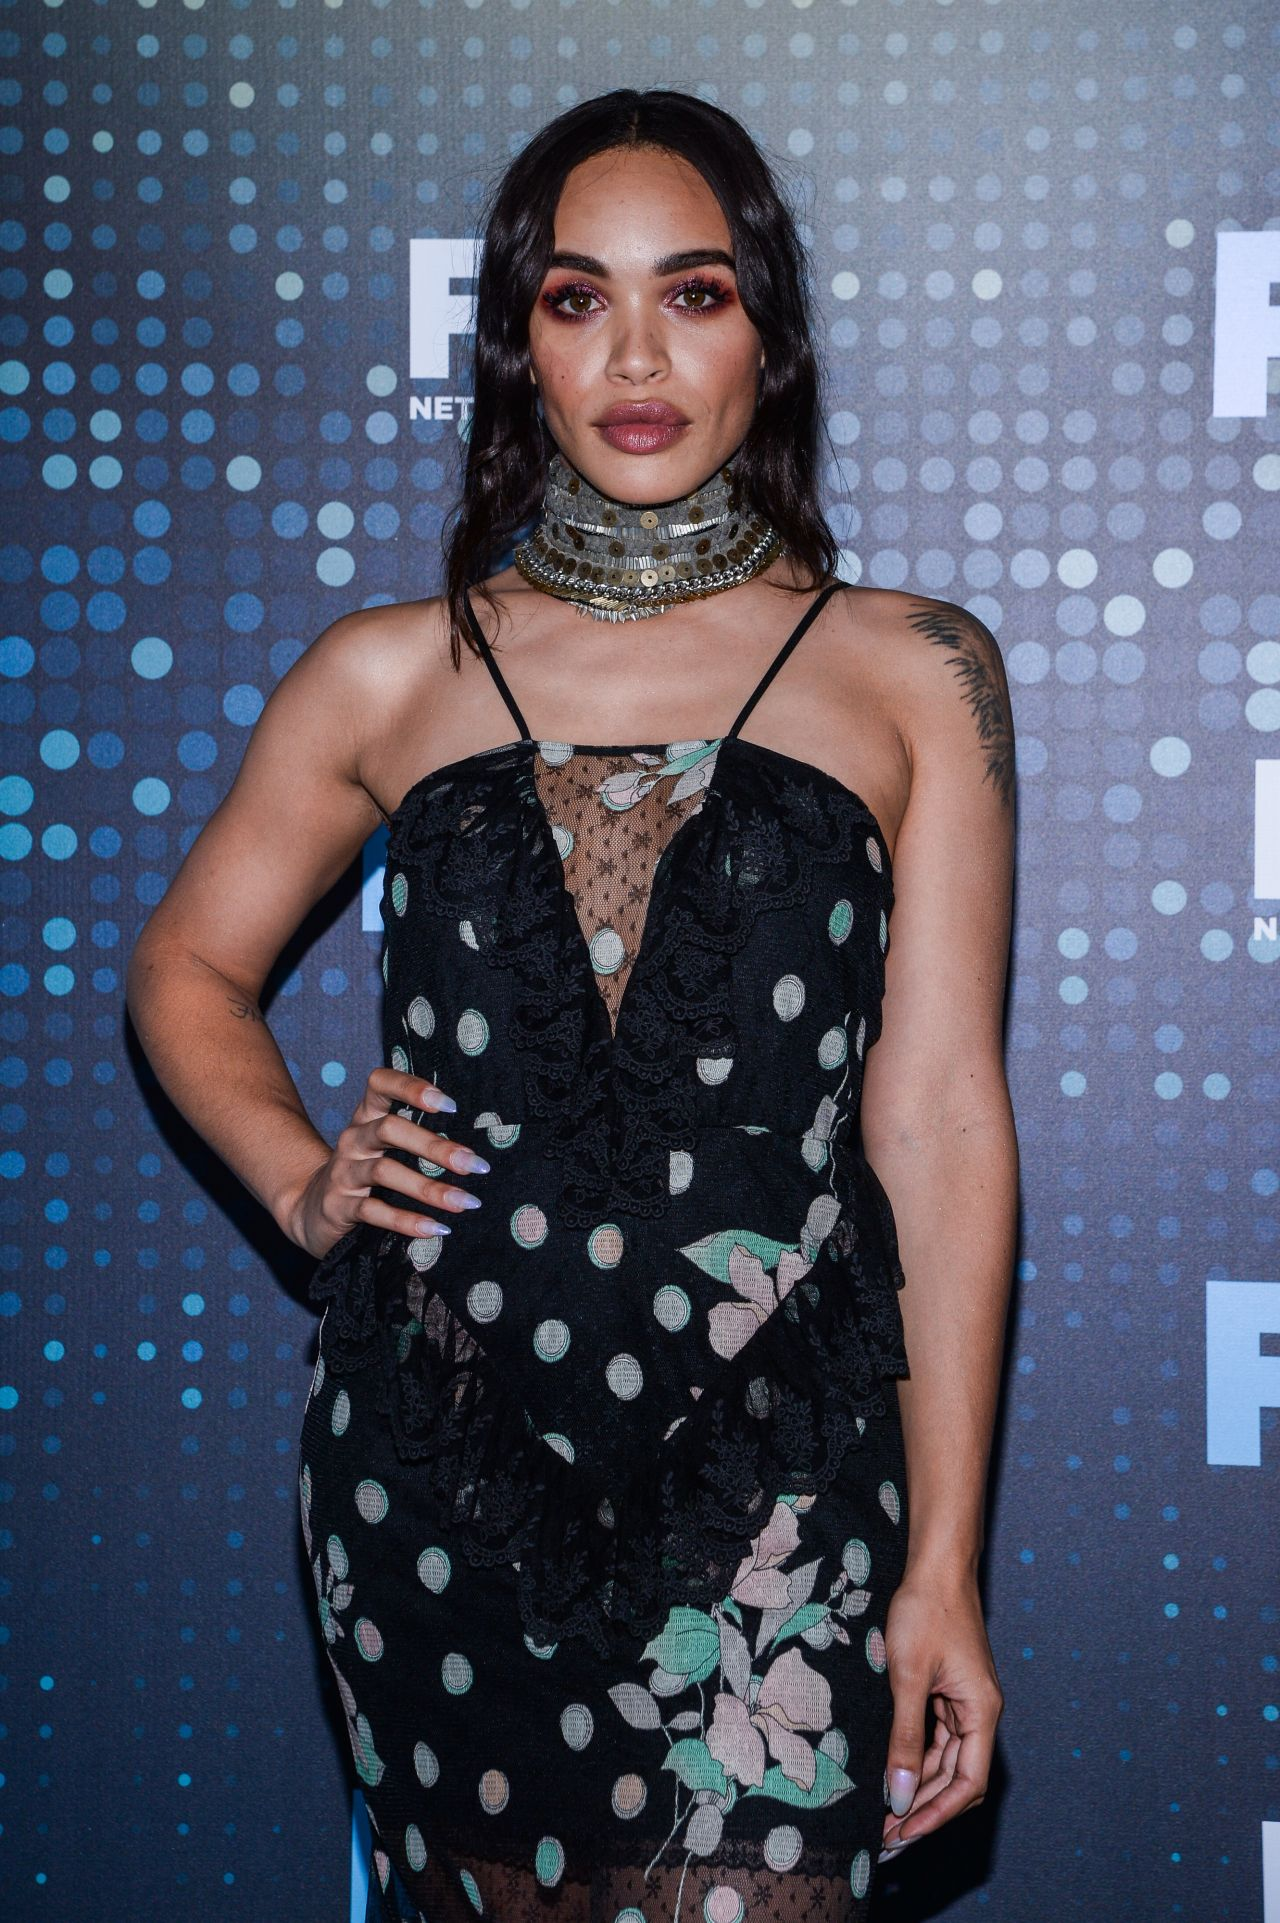 Cleopatra Coleman nudes (68 pictures) Hacked, Facebook, lingerie